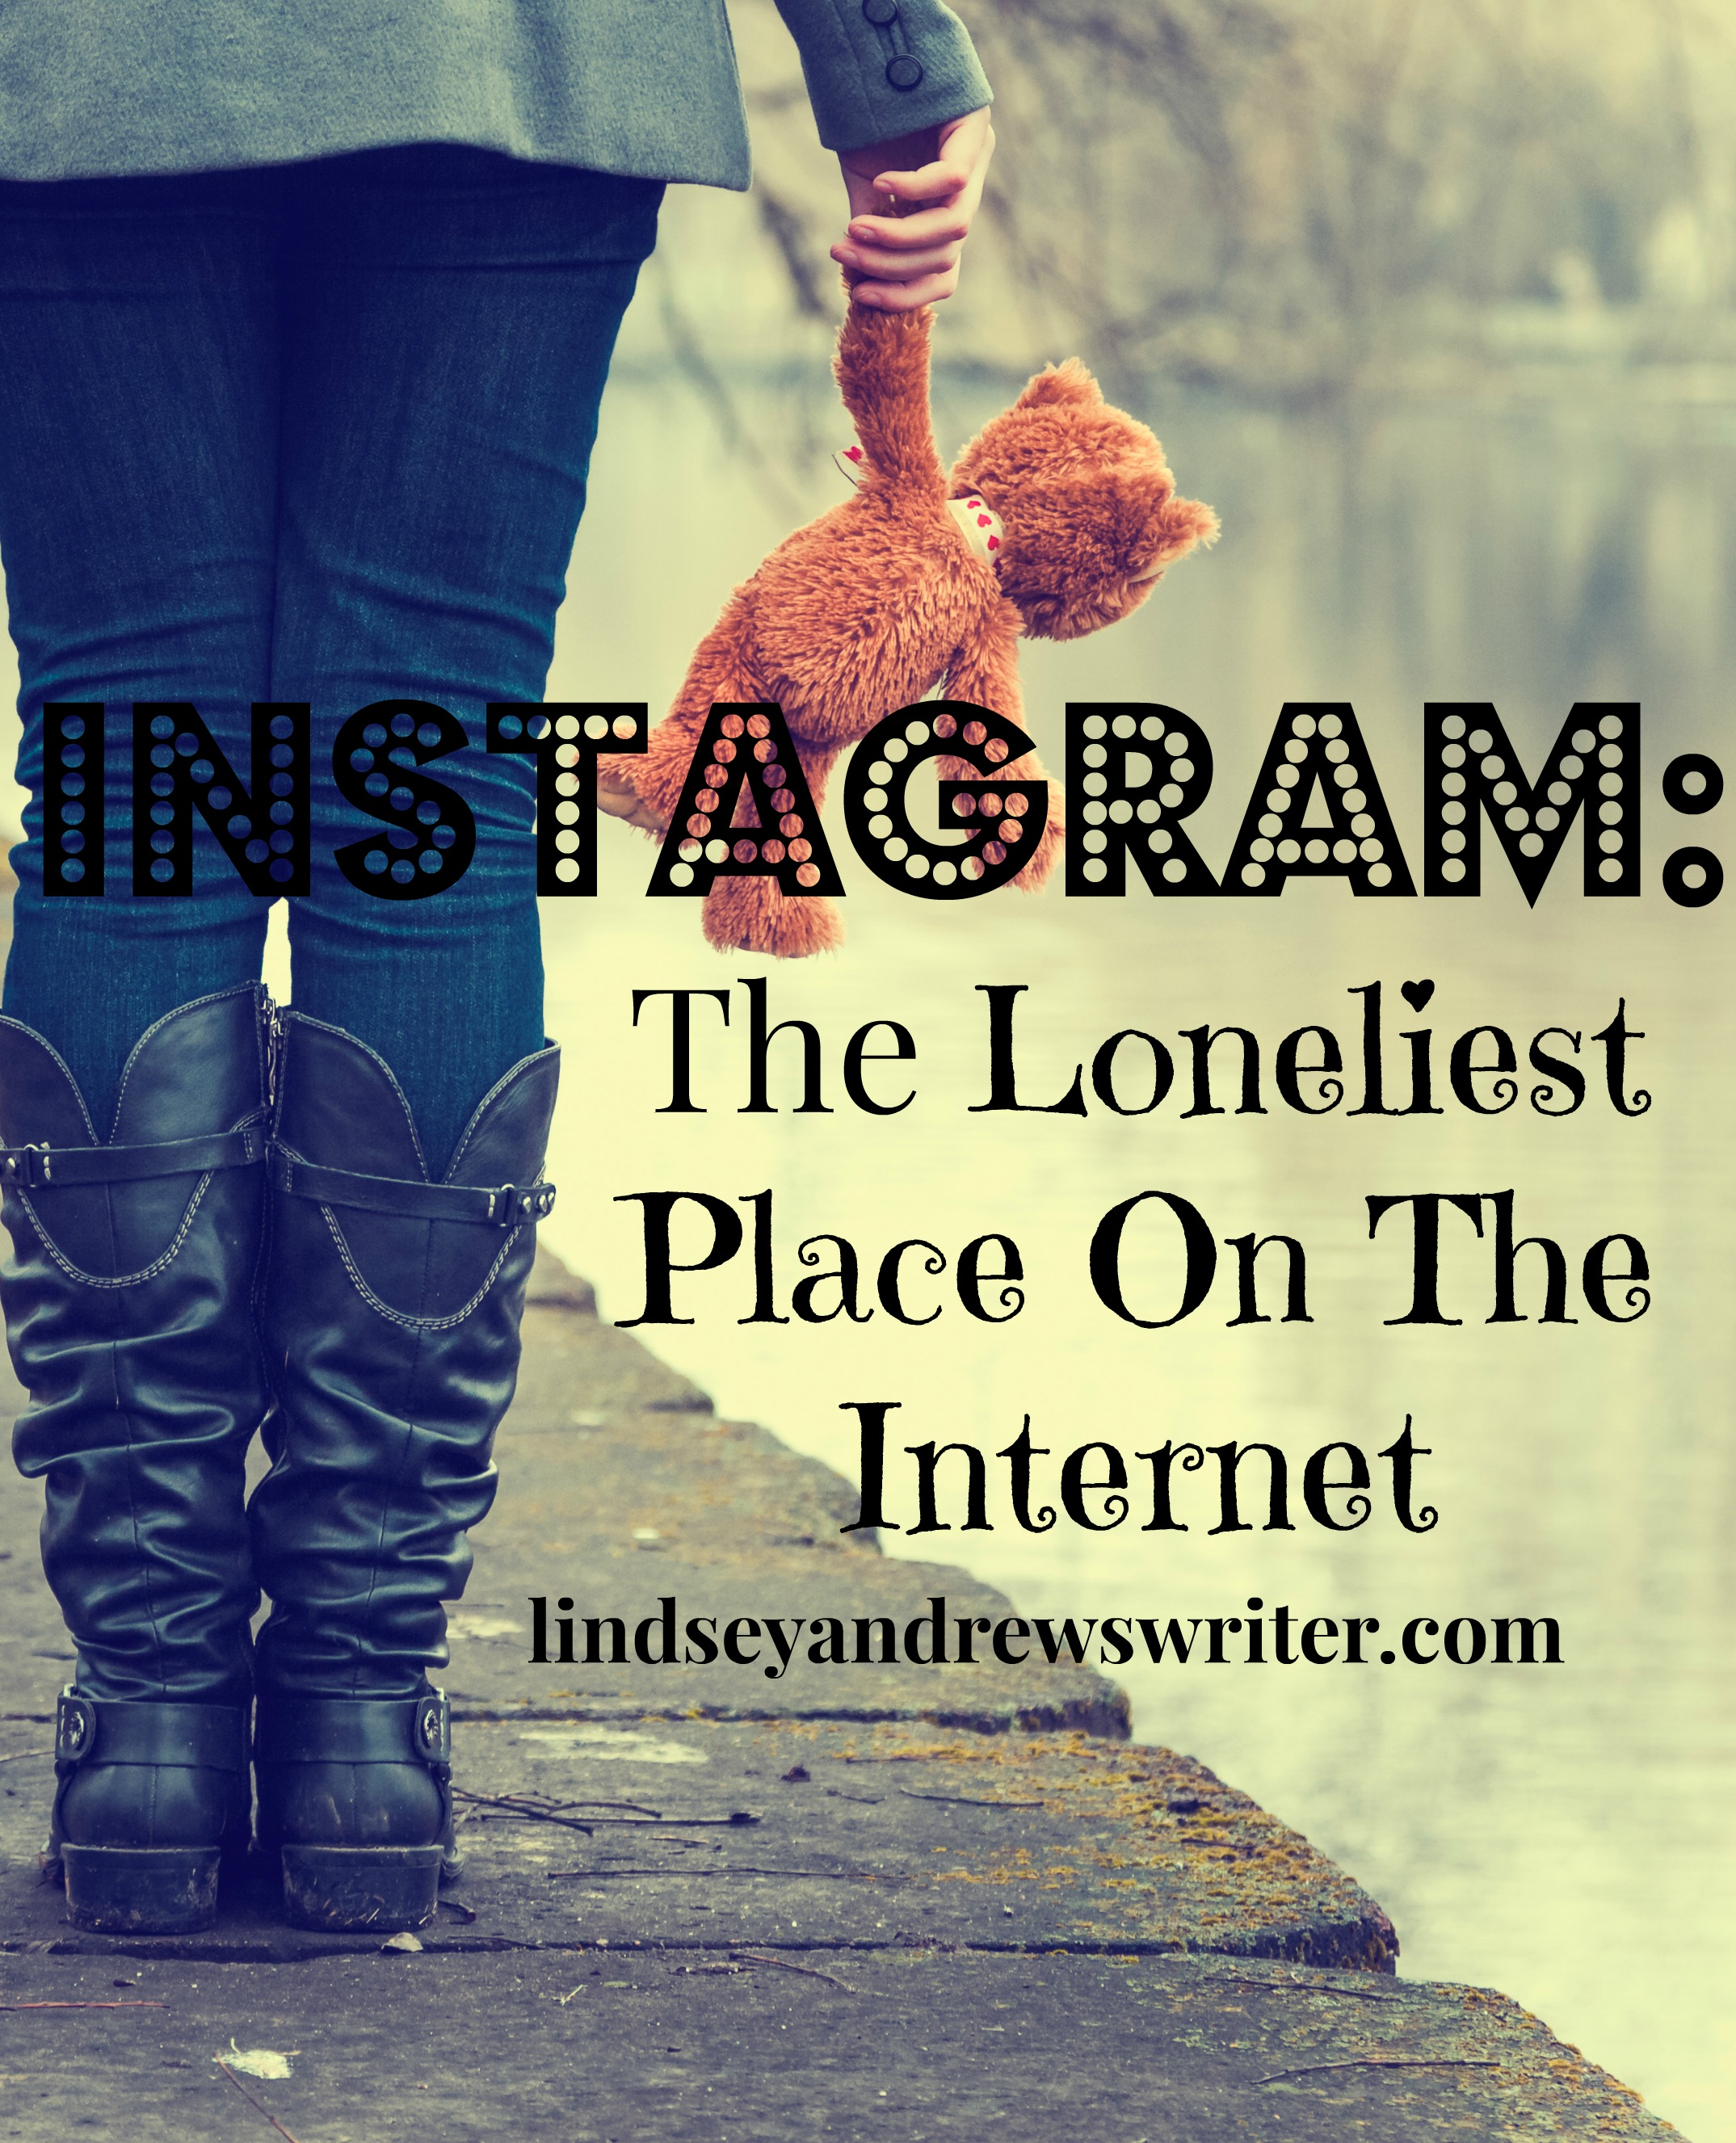 Instagram: The Most Depressing Place In CyberSpace